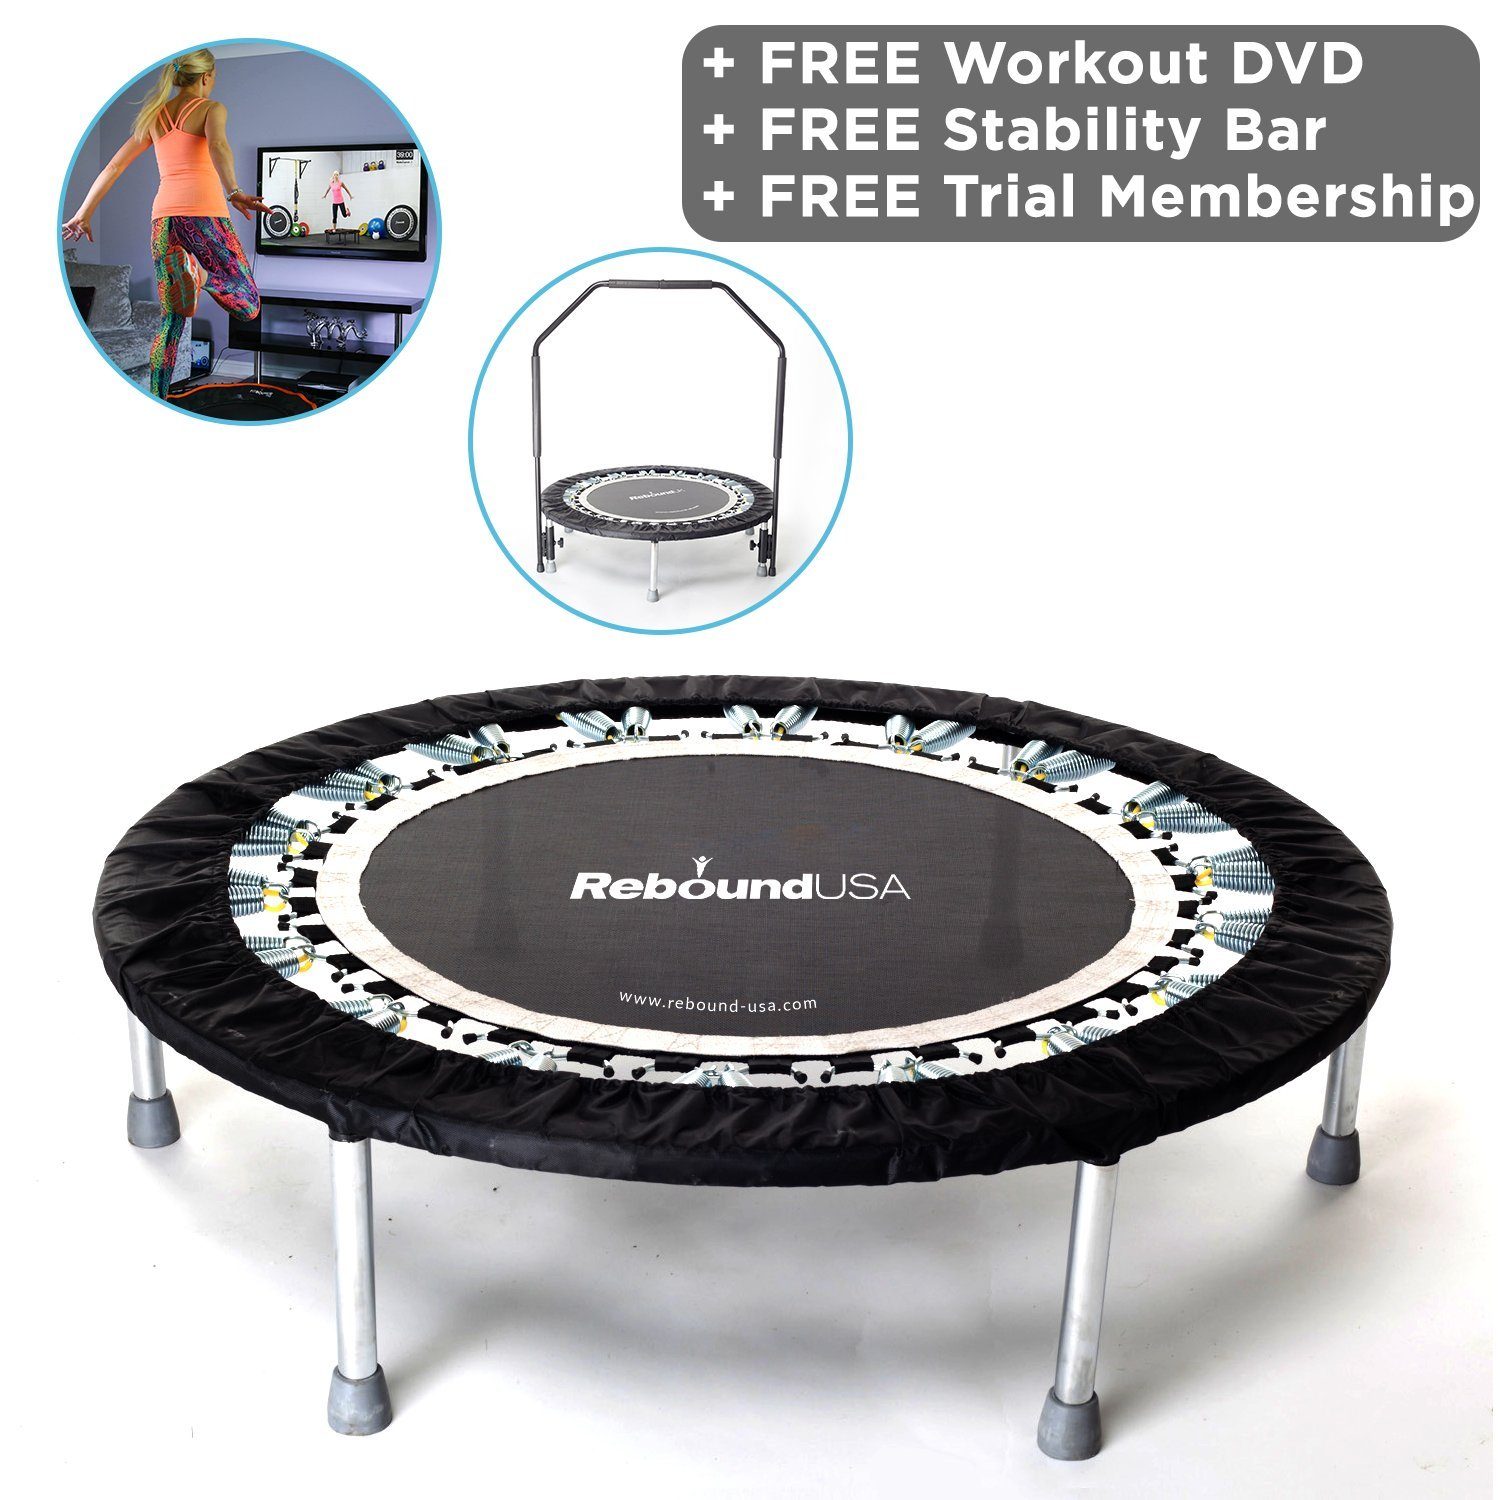 Jumpsport Handle Bar For Trampolines: MaXimus Pro Gym Rebounder Mini Trampoline With Handle Bar